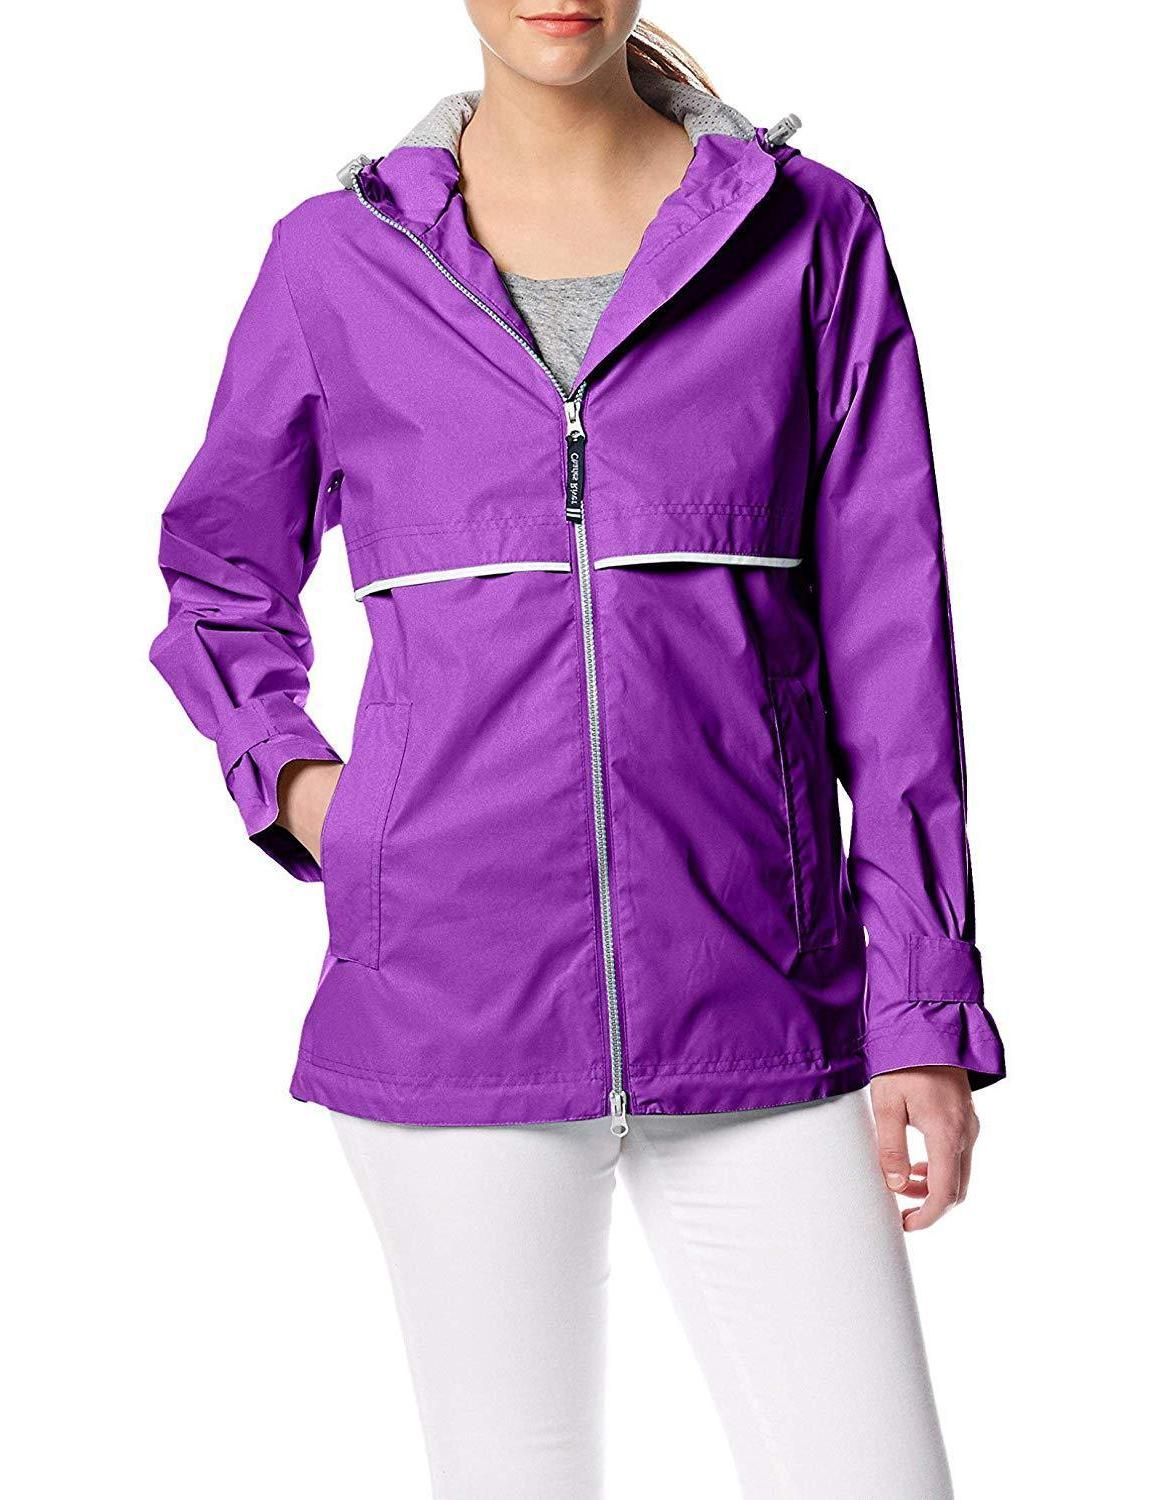 Charles Apparel Women's New Jacket